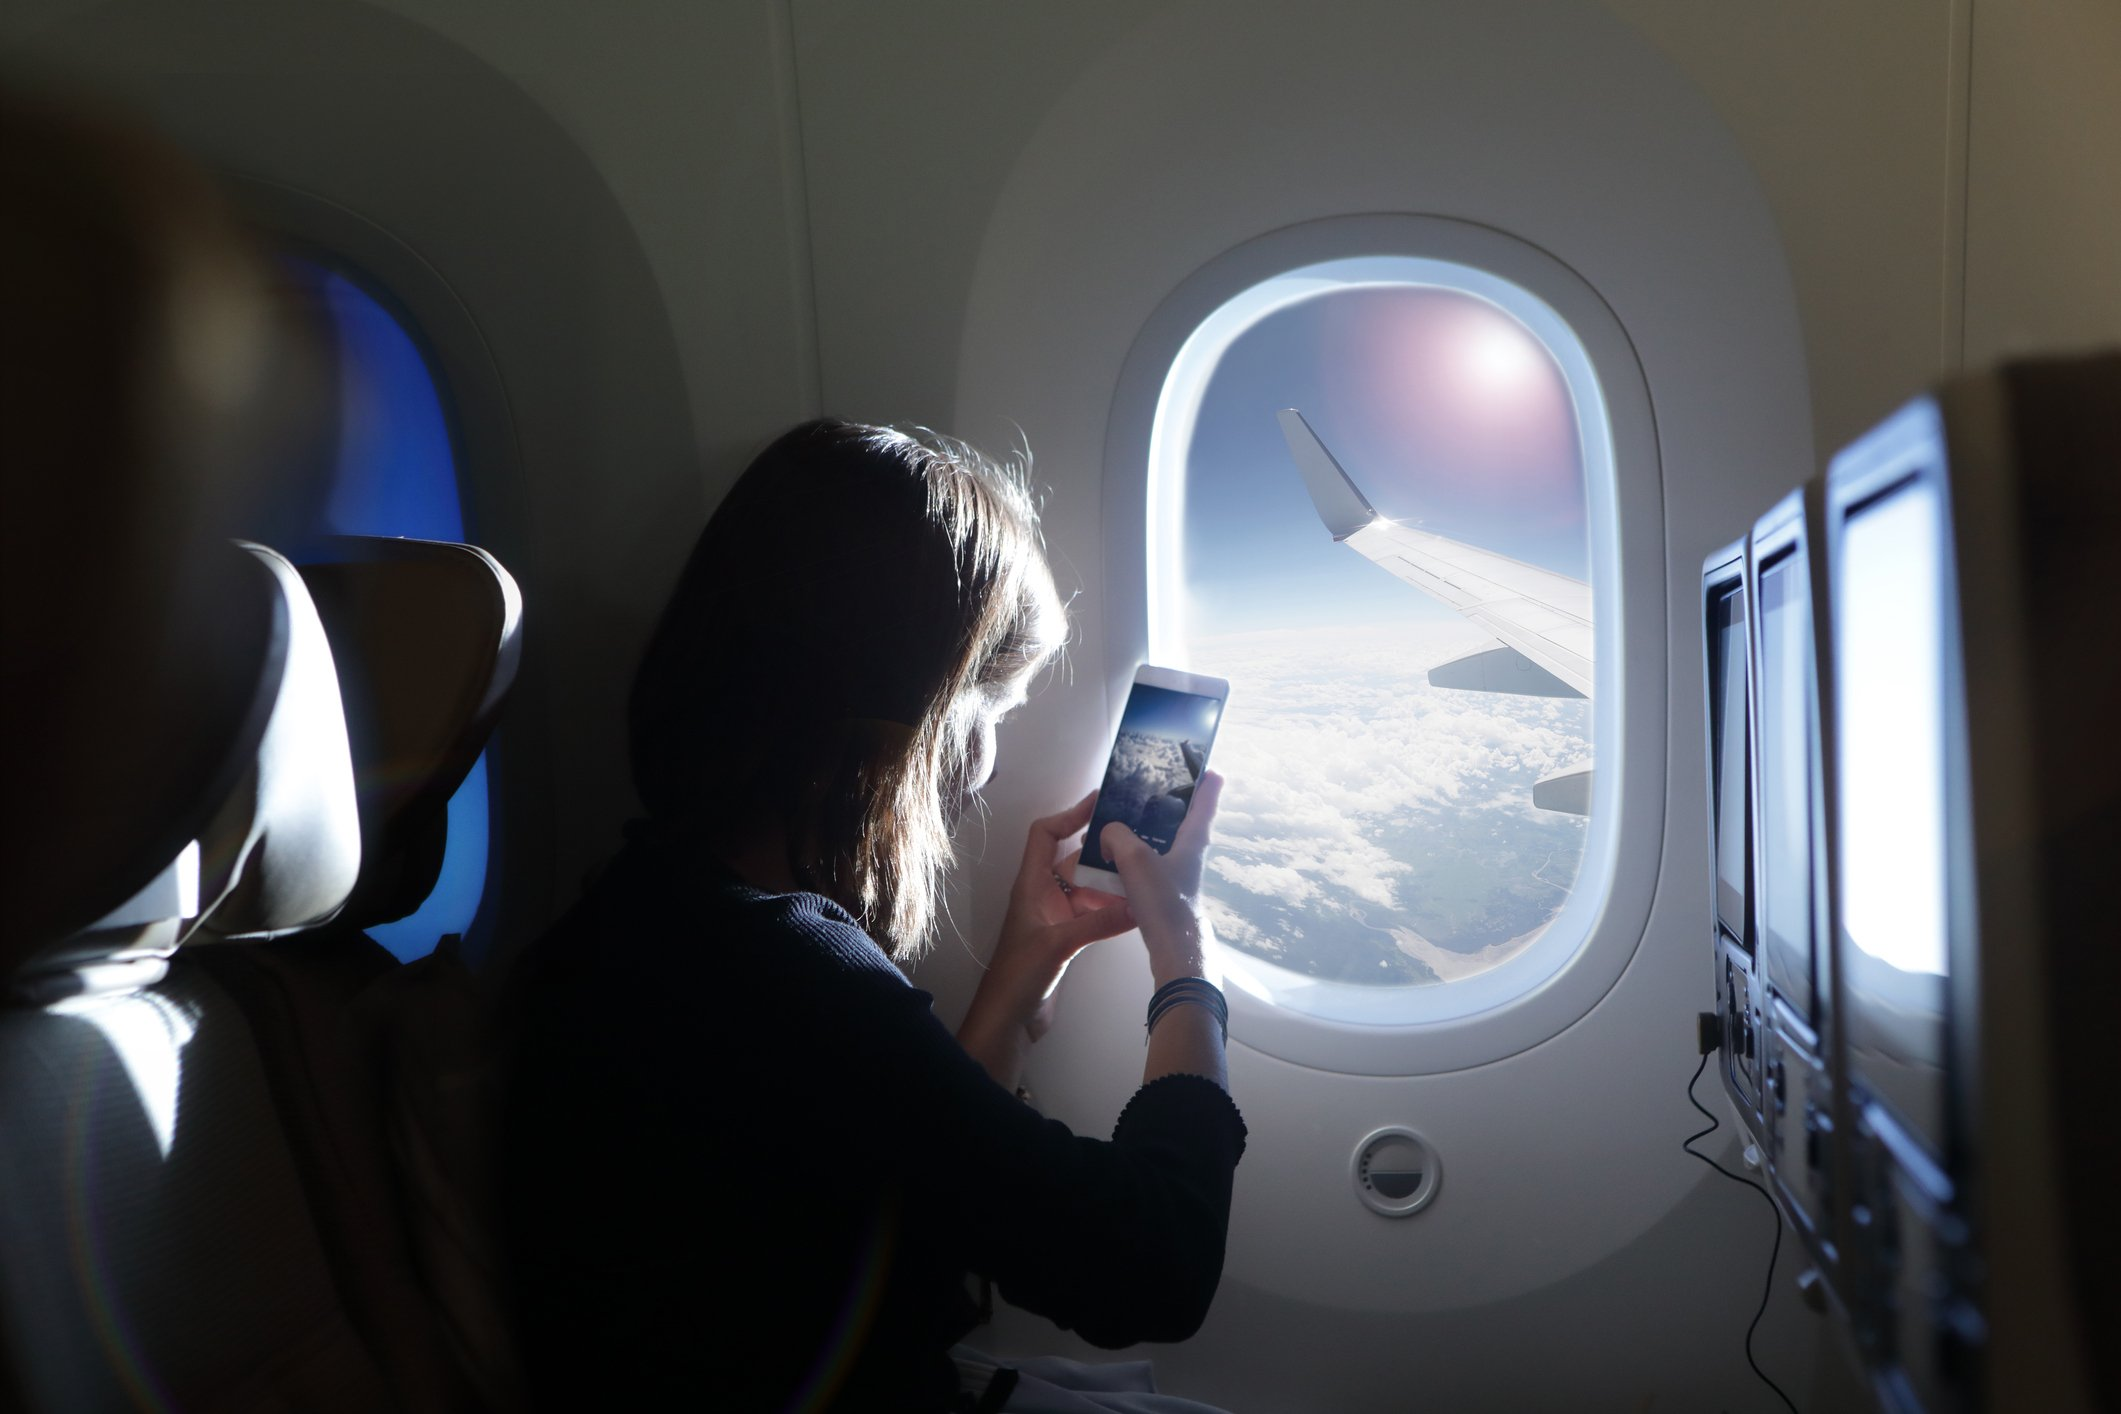 Girl taking photo out of airplane window | Photo: Getty Images